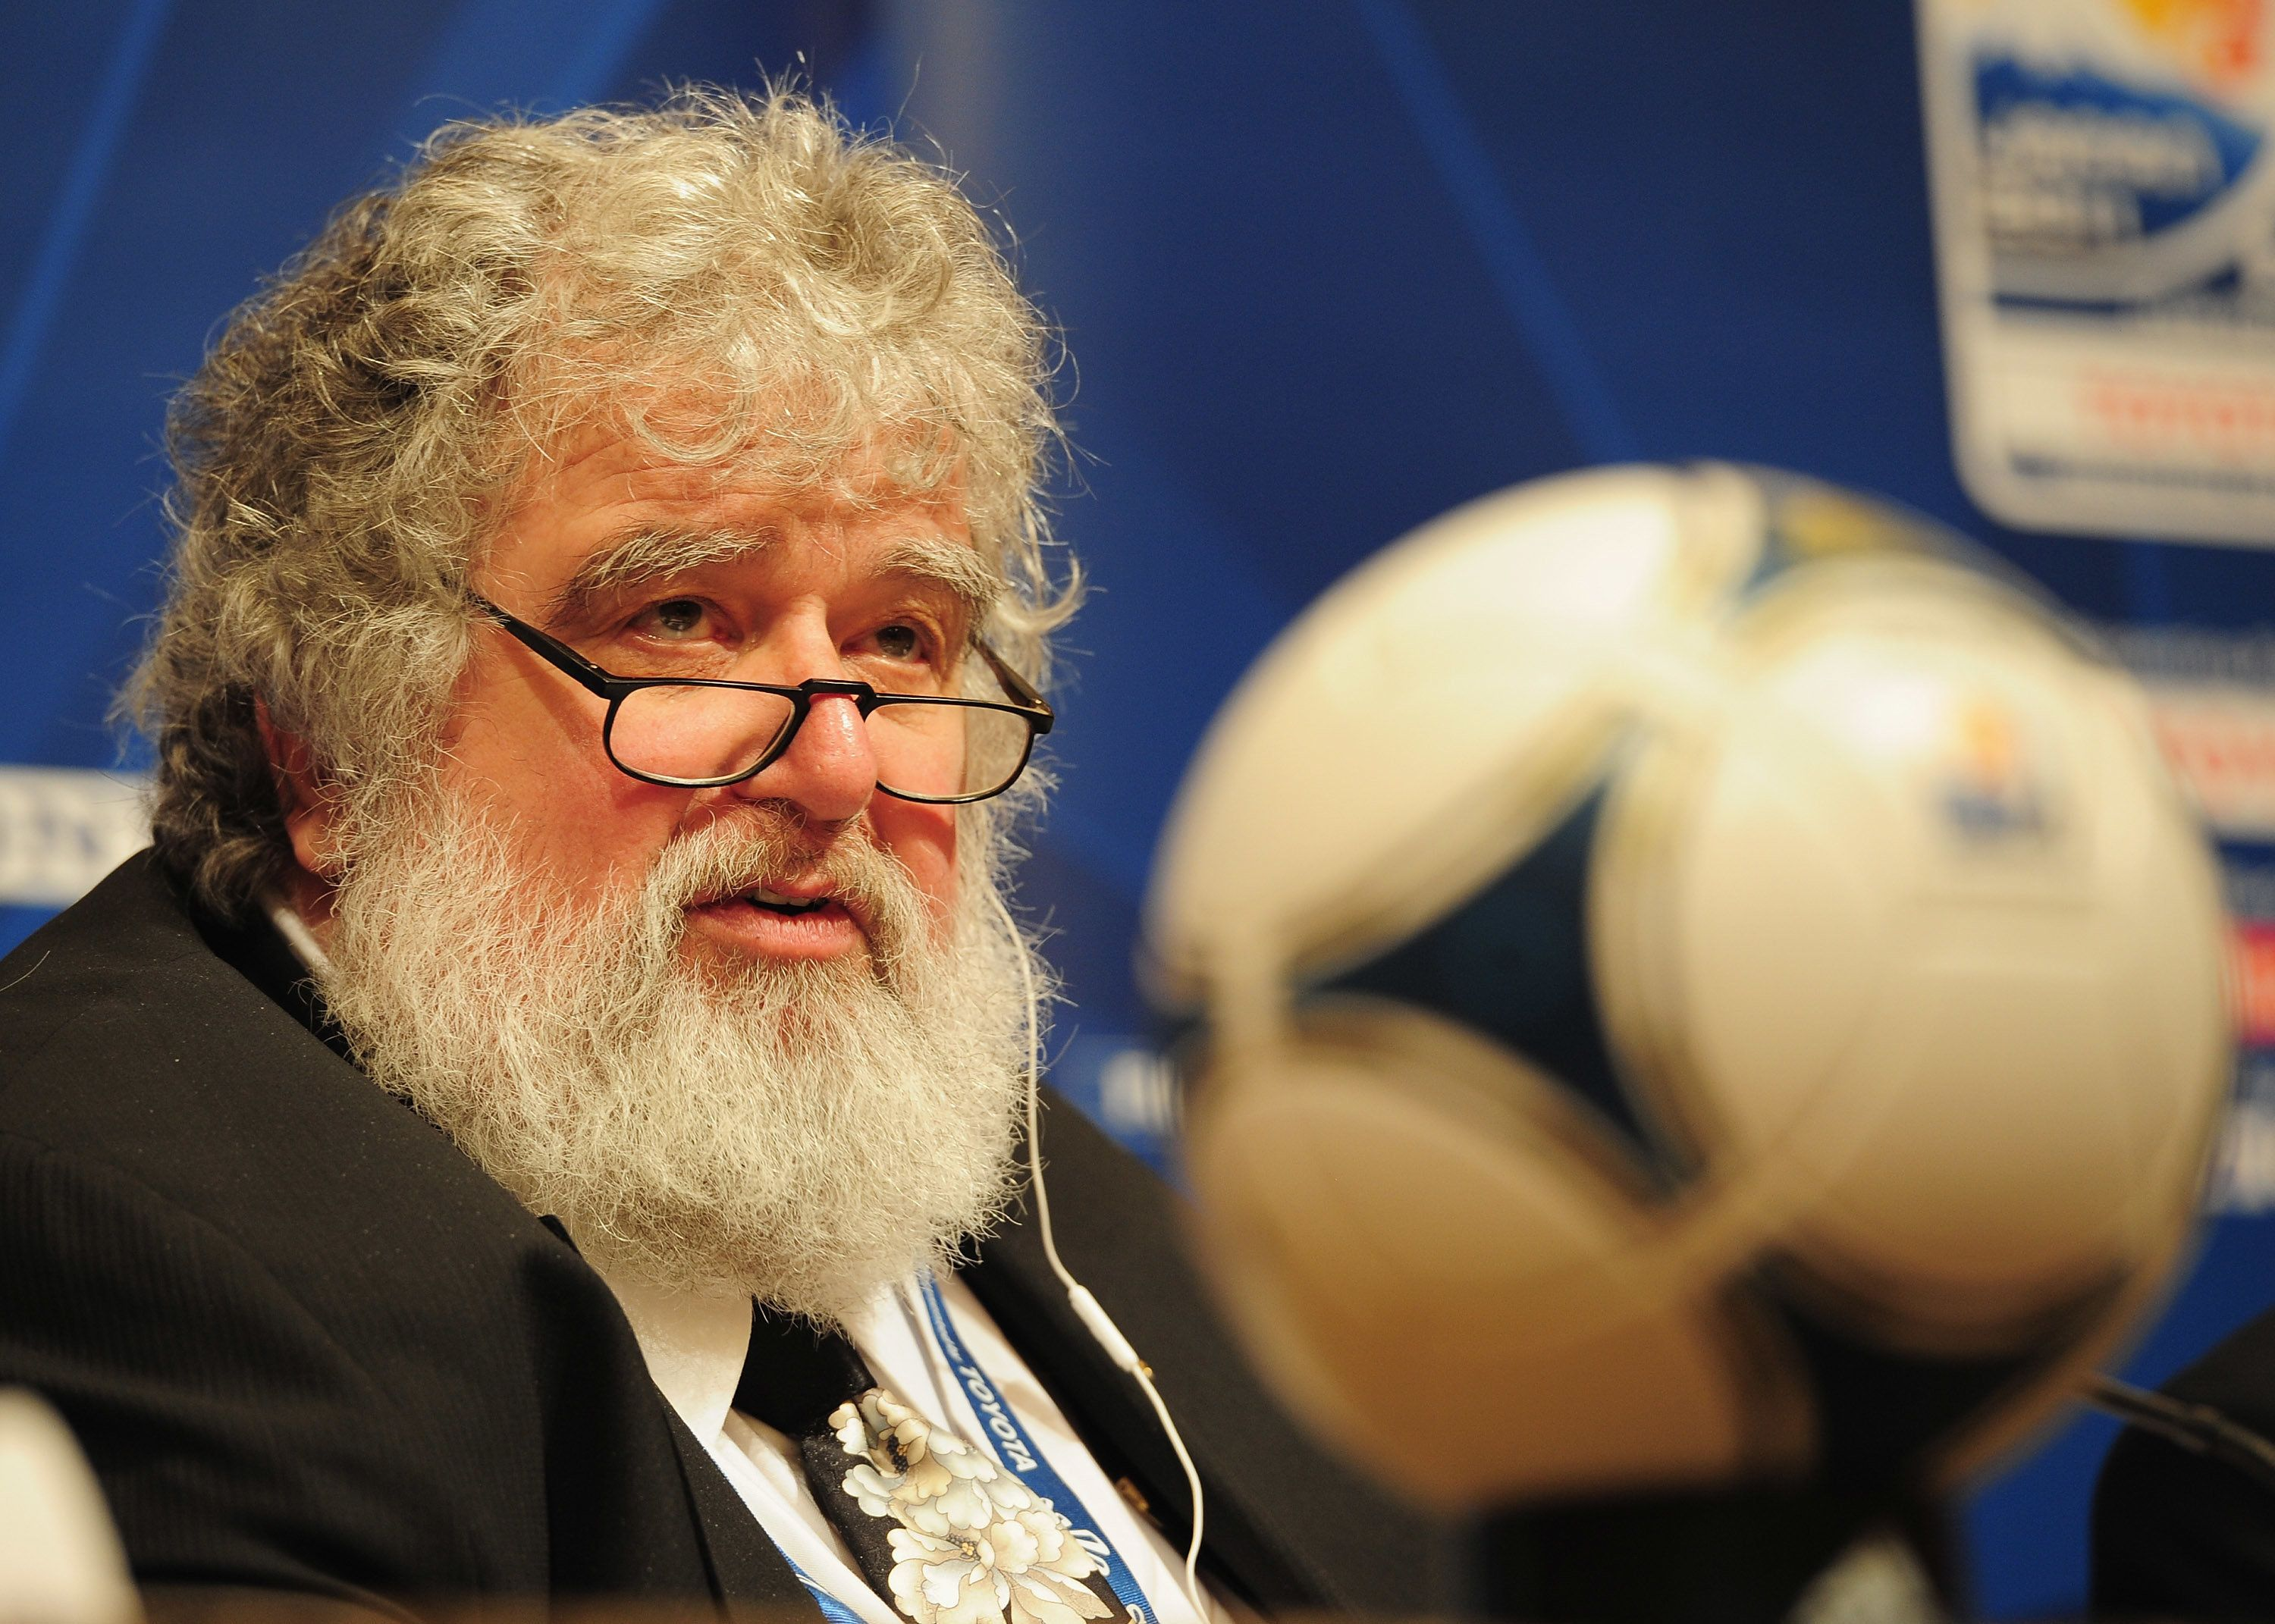 NAGOYA, JAPAN - DECEMBER 07:  Chuck Blazer Chairman of the Organising Committee for the FIFA Club World Cup talks to the media during the FIFA Club World Cup Organising Committee Press Conference at Nagoya Marriott Associa Hotel on December 7, 2011 in Nagoya, Japan.  (Photo by Shaun Botterill - FIFA/FIFA via Getty Images)